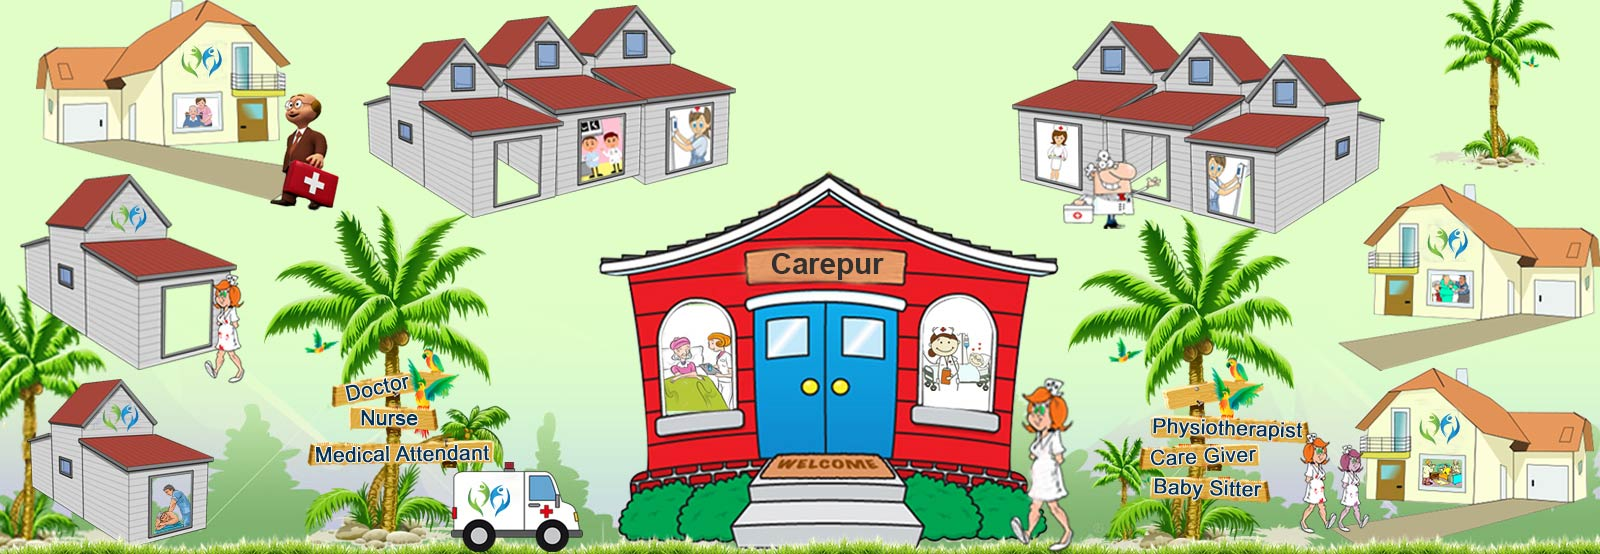 About Carepur Services